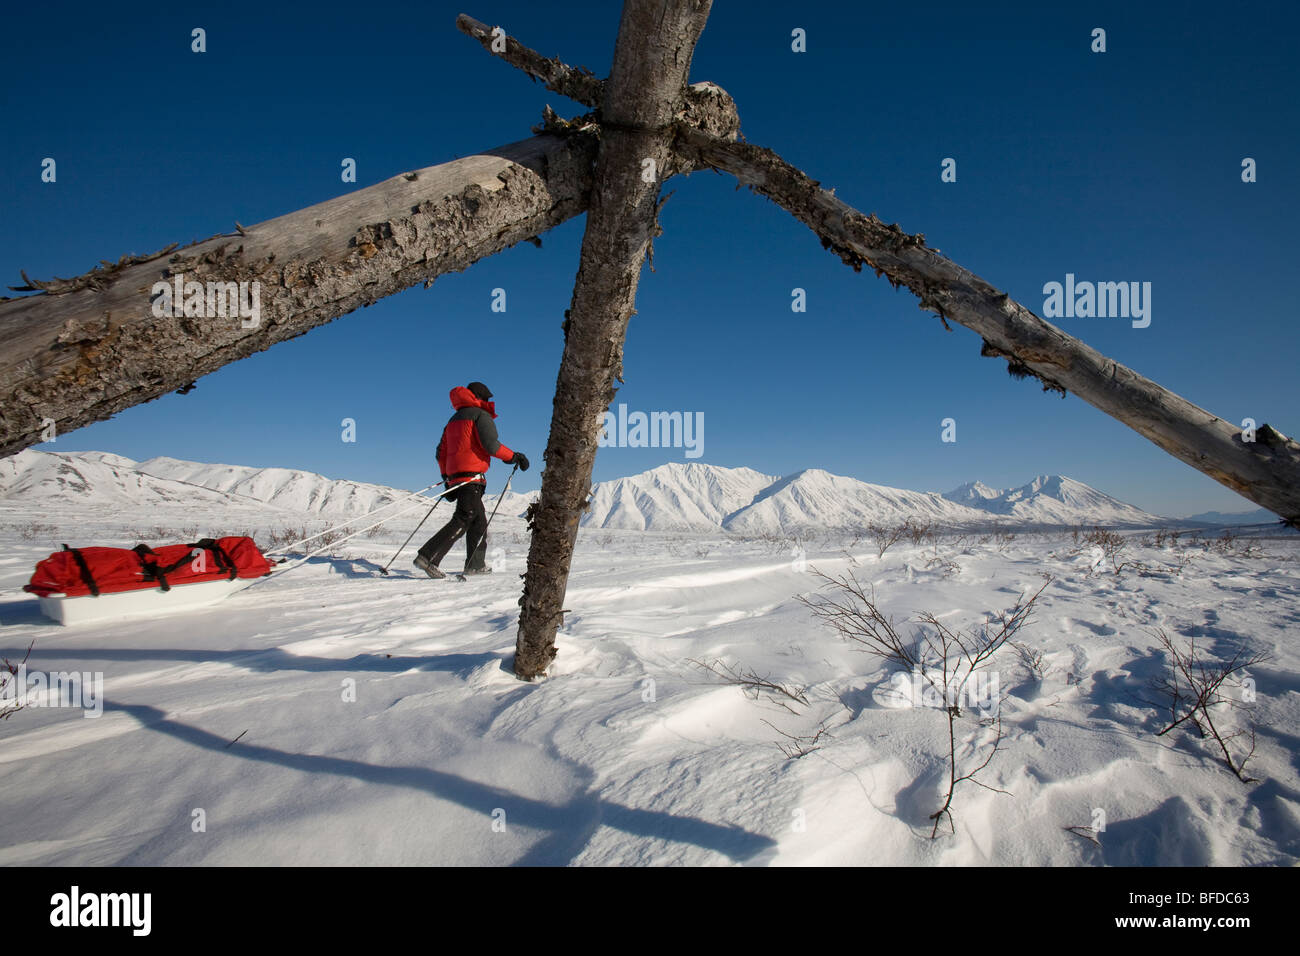 A woman hiking through a snowy, mountainous landscape pulling a sled. - Stock Image